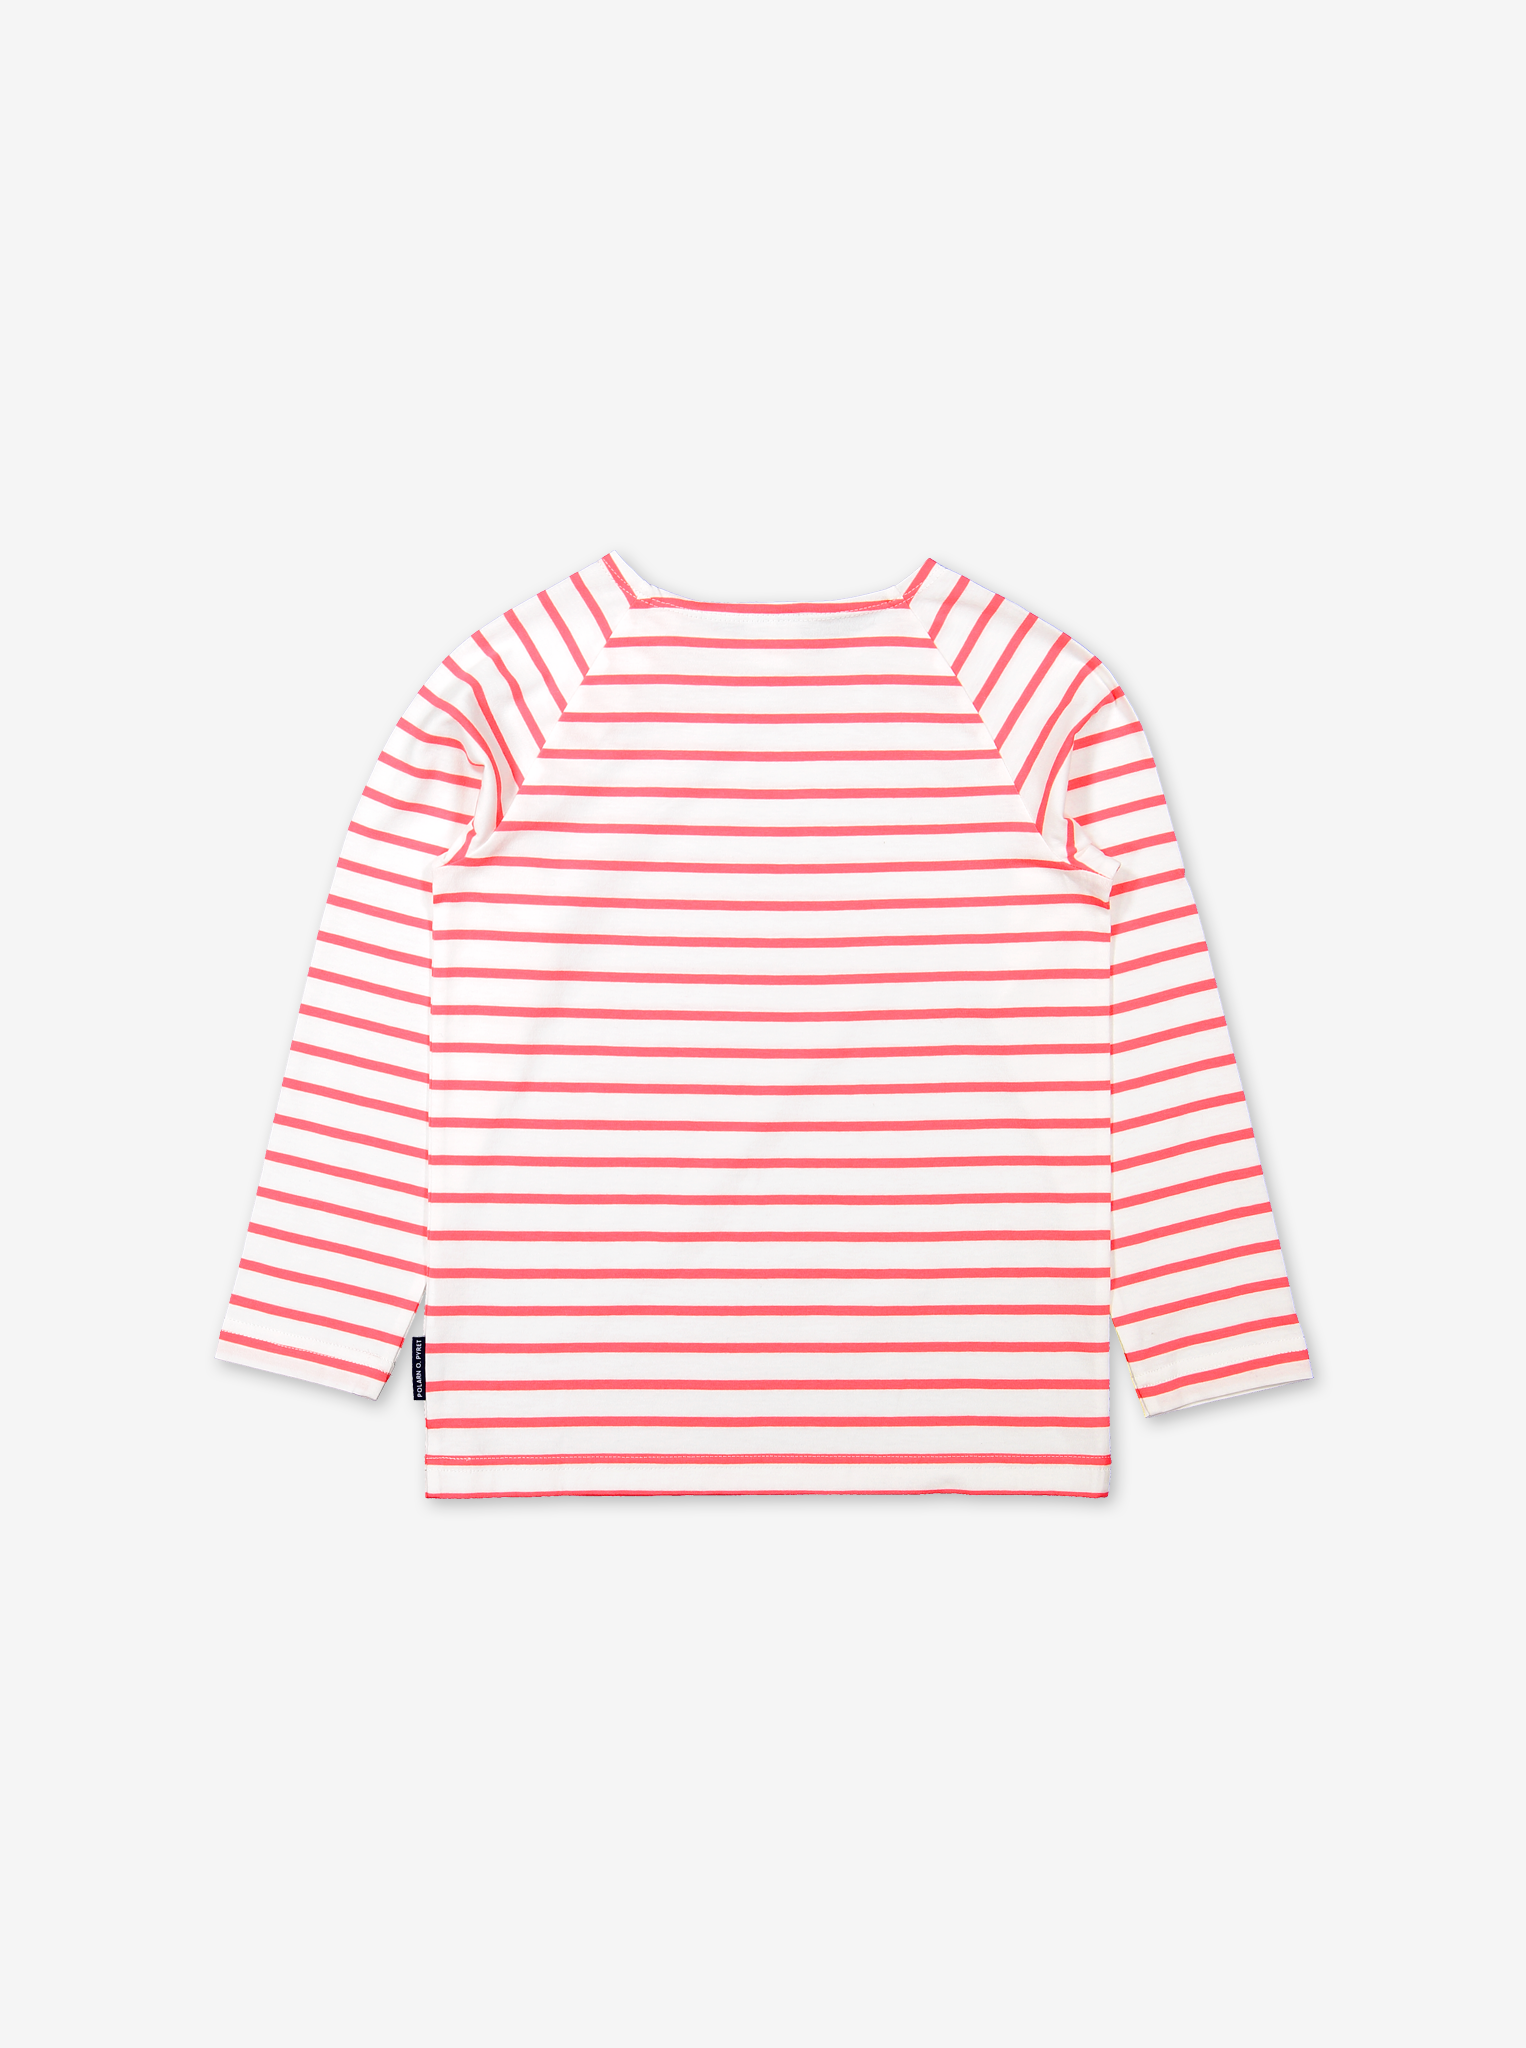 Breton Stripe Kids Top-Unisex-1-12y-Pink